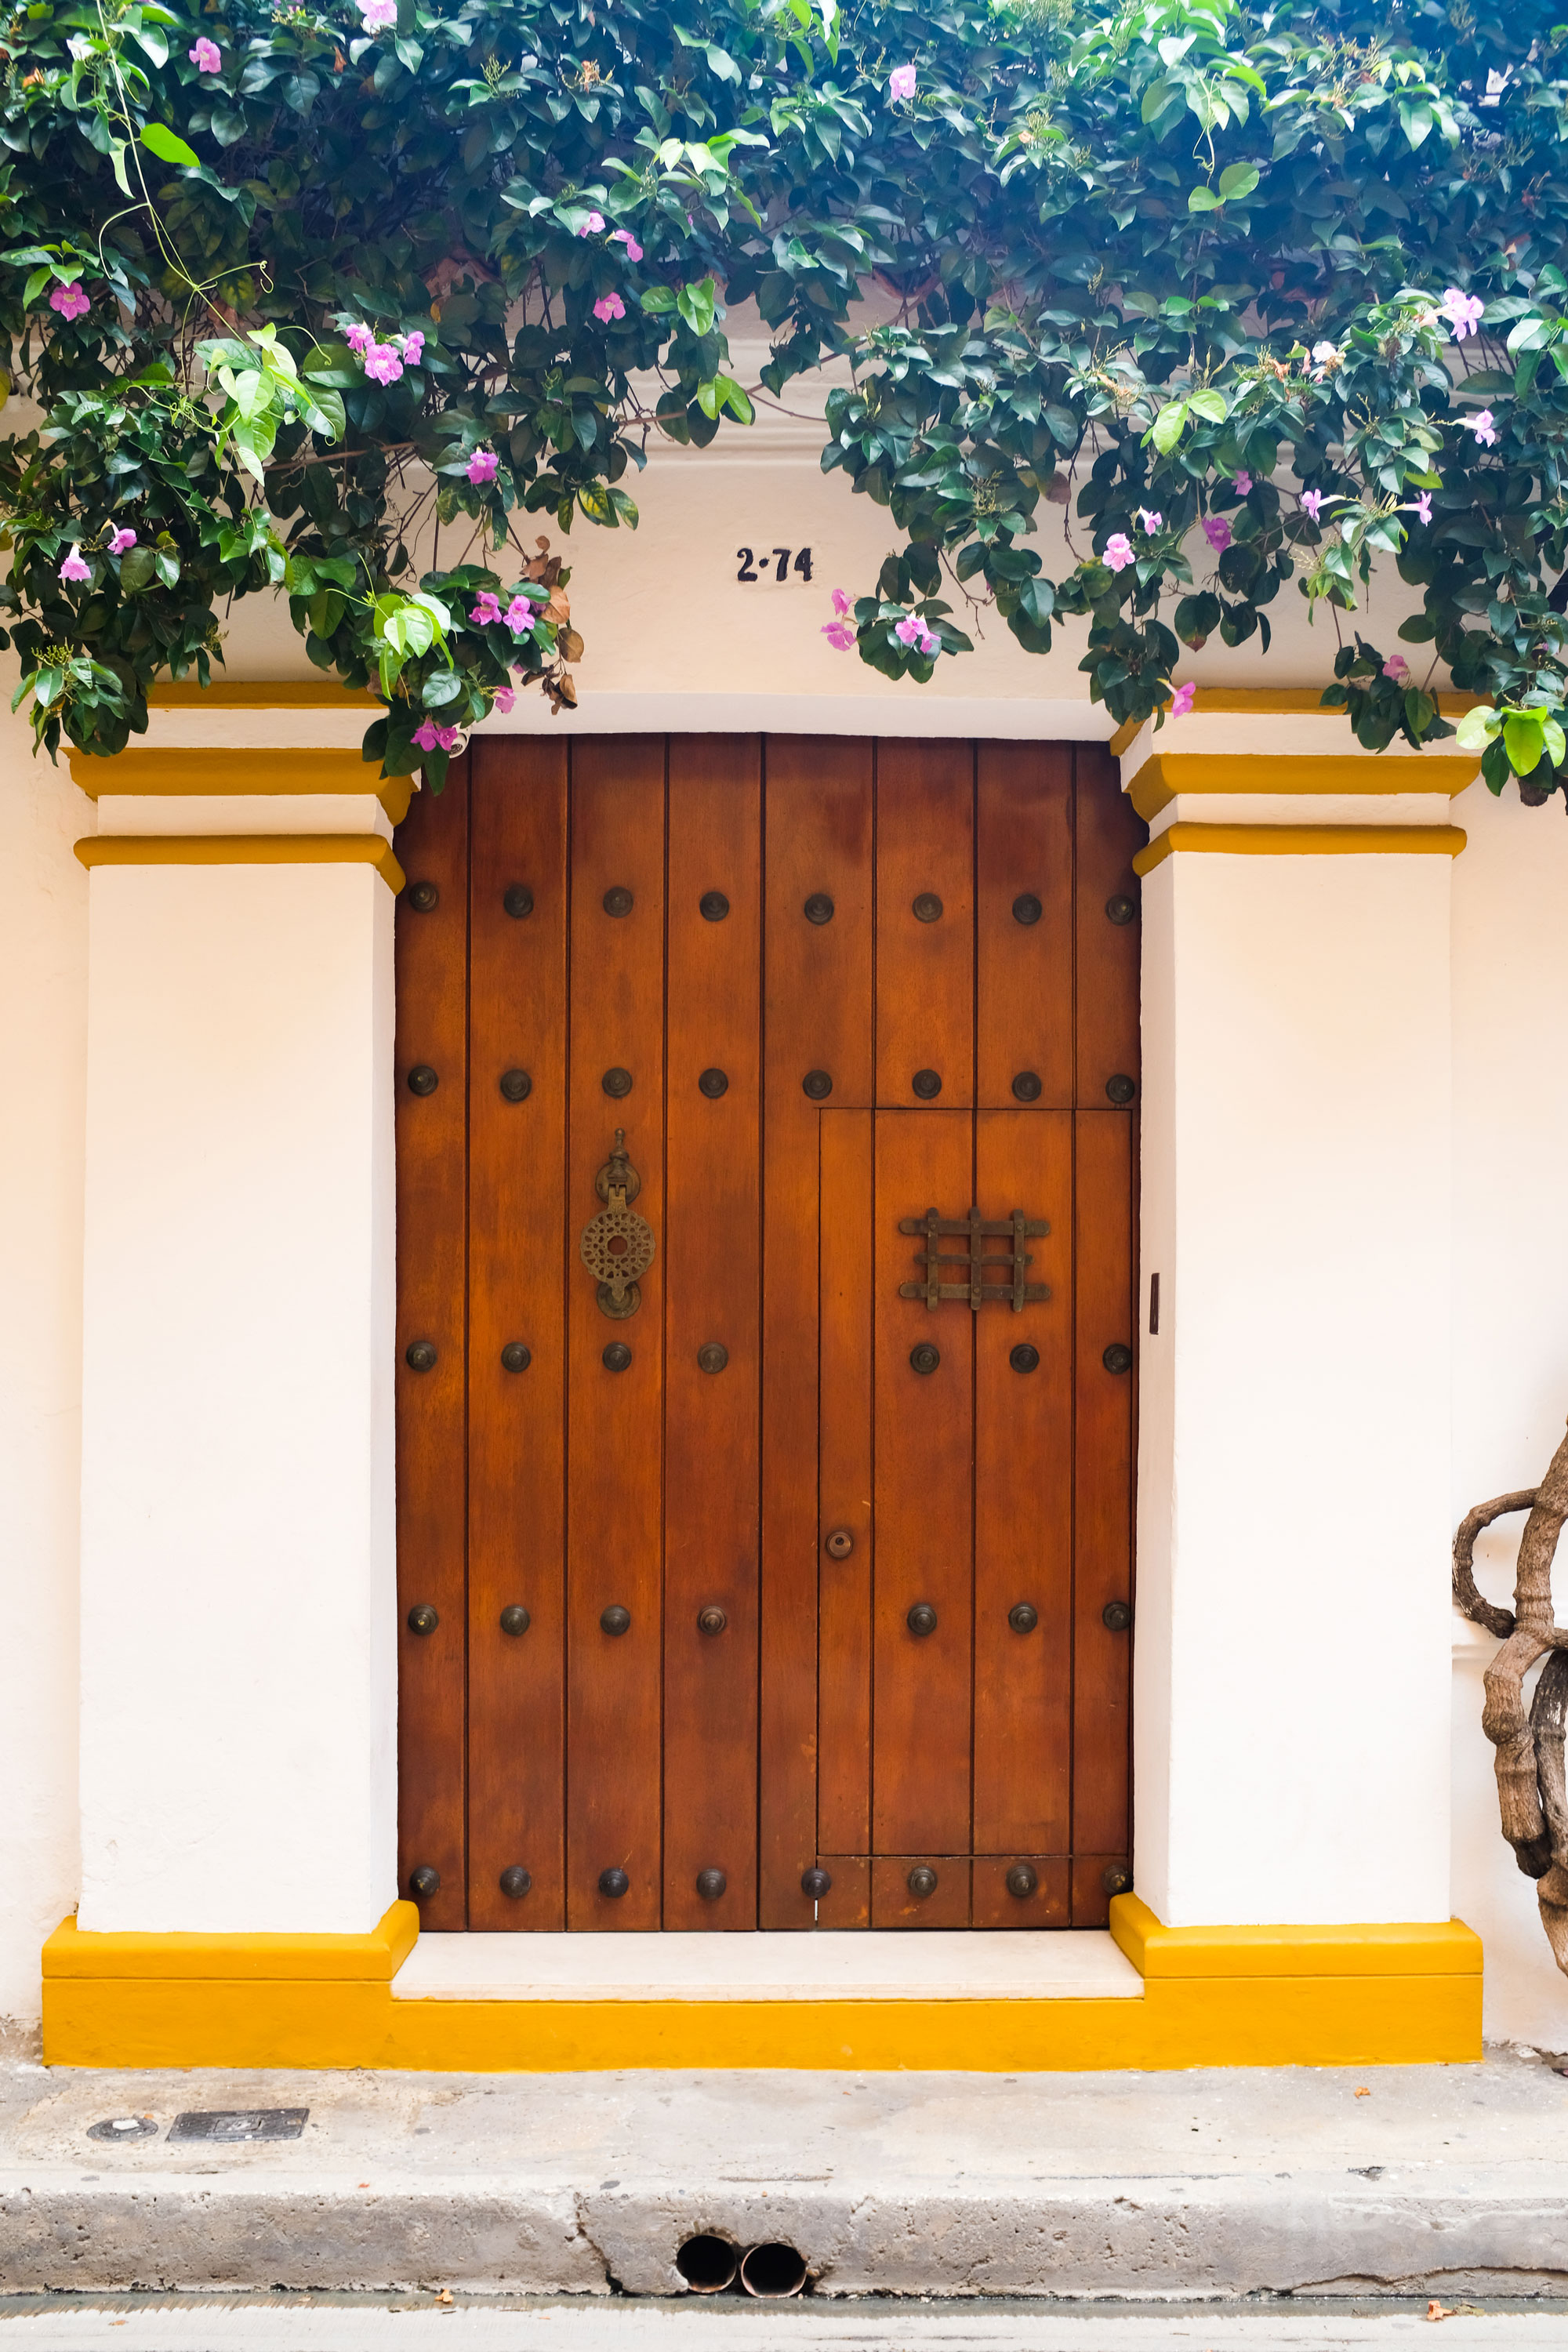 Cartagena is iconic for its numerous detailed doors. Which makes me wonder what is behind them. From what I know, they're beautiful mansions with pools in the middle of the house.